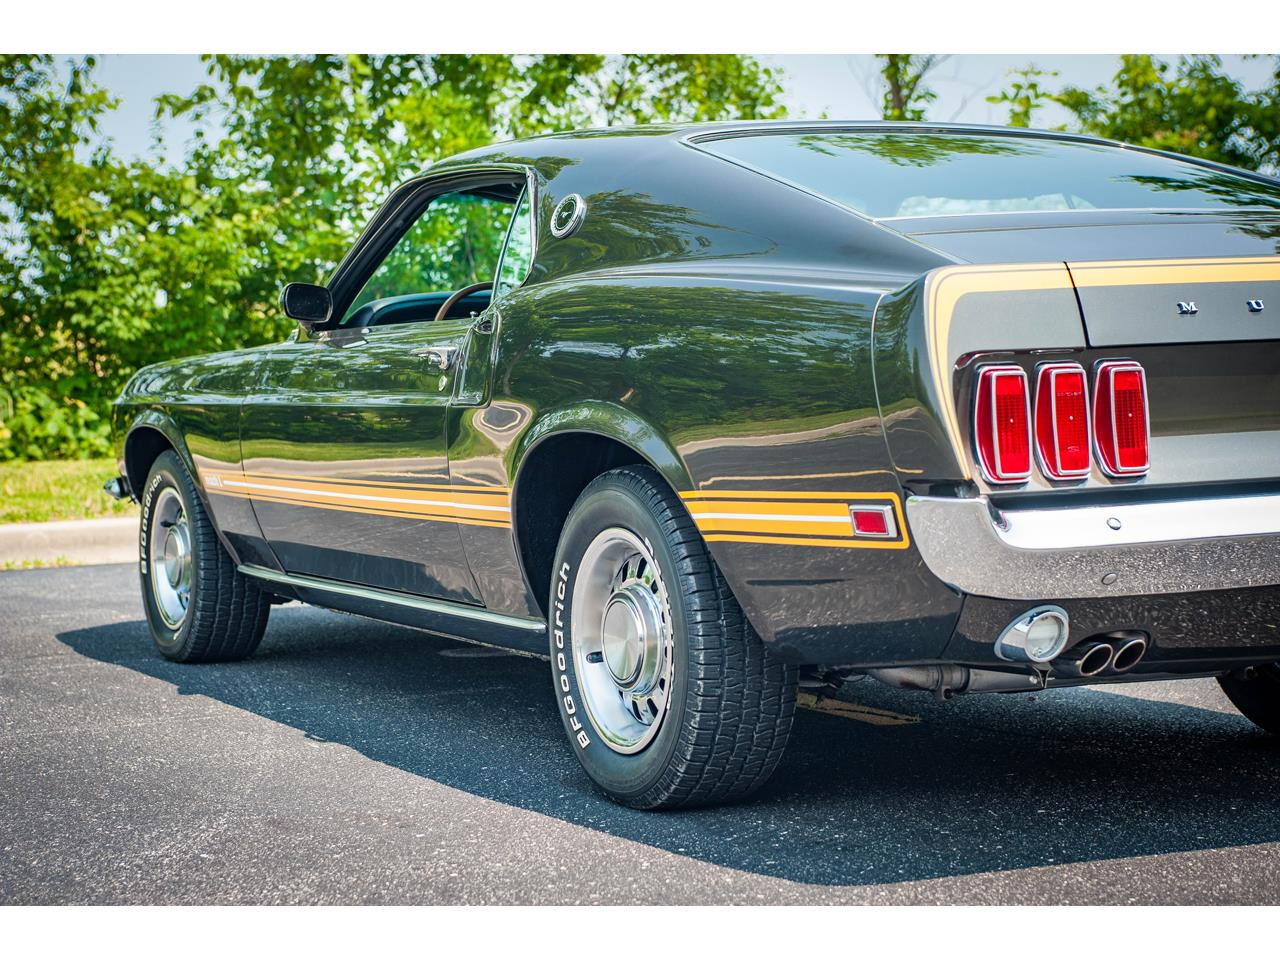 Large Picture of 1969 Ford Mustang located in Illinois - $97,500.00 - QBA2